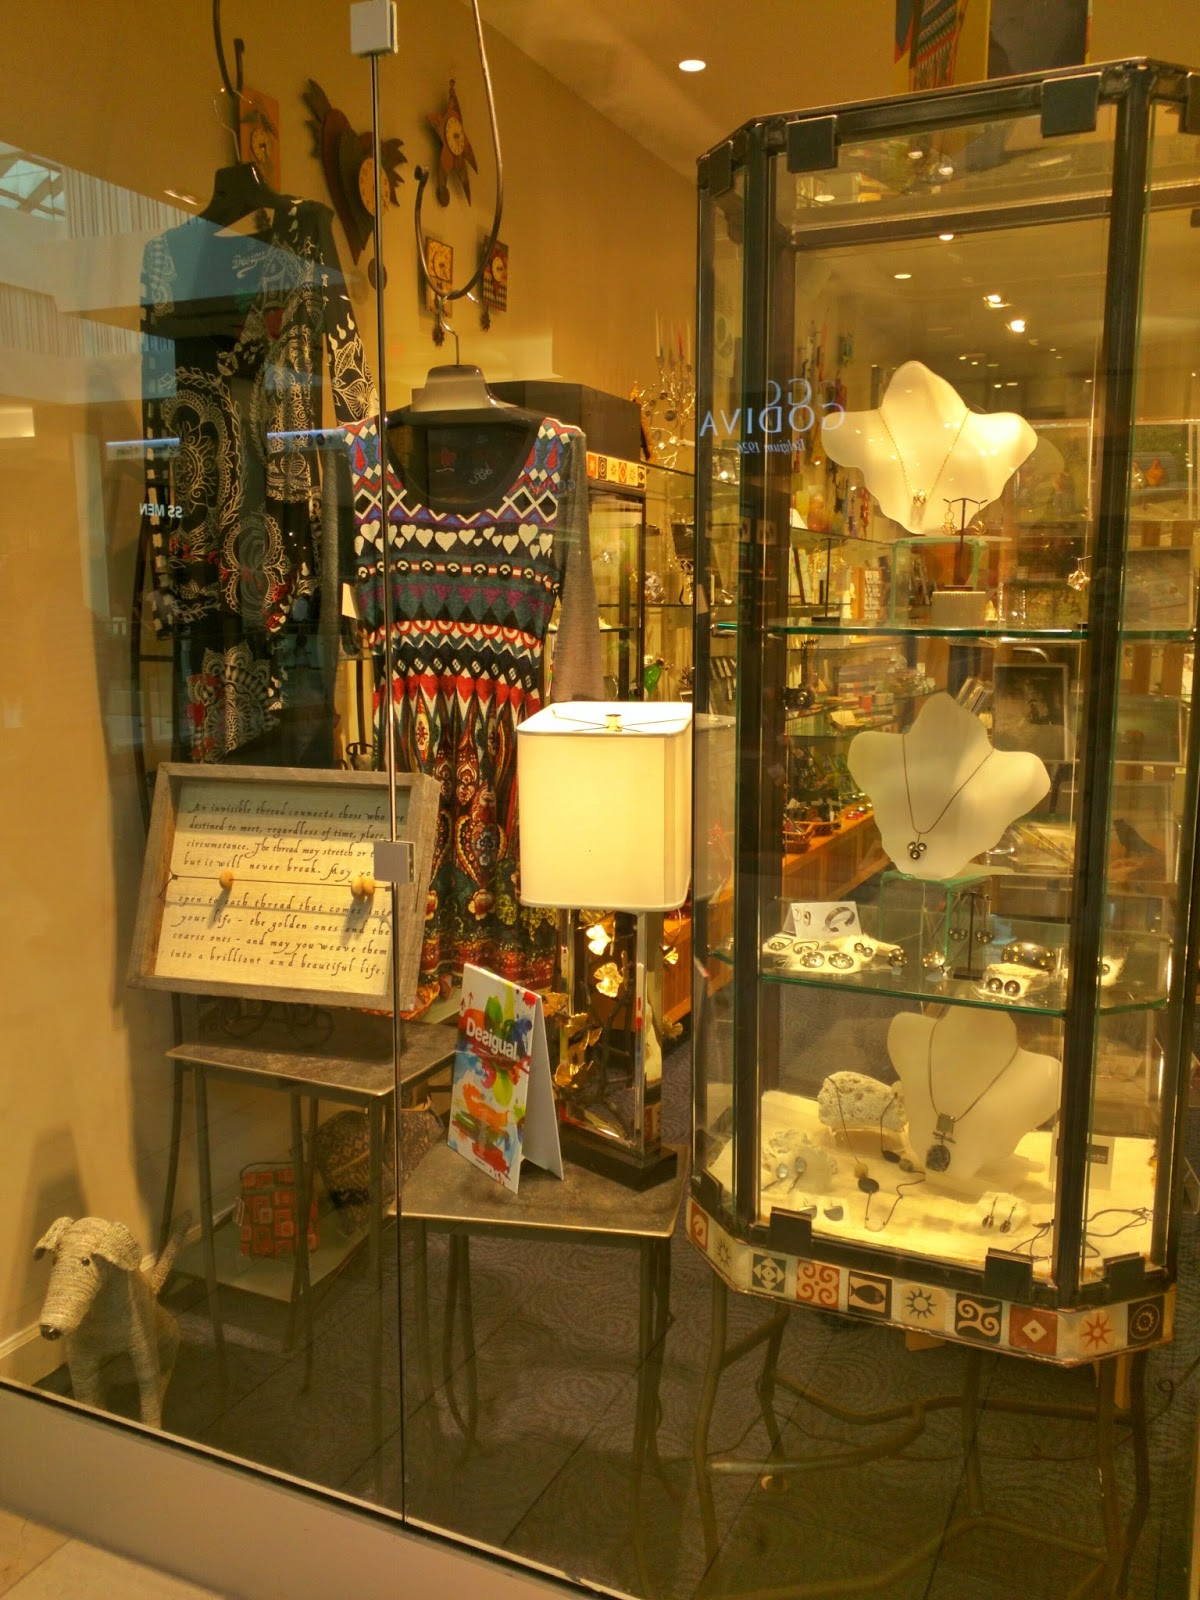 Bethesda visual merchandising and jewelry display window, a retro and cozy look.